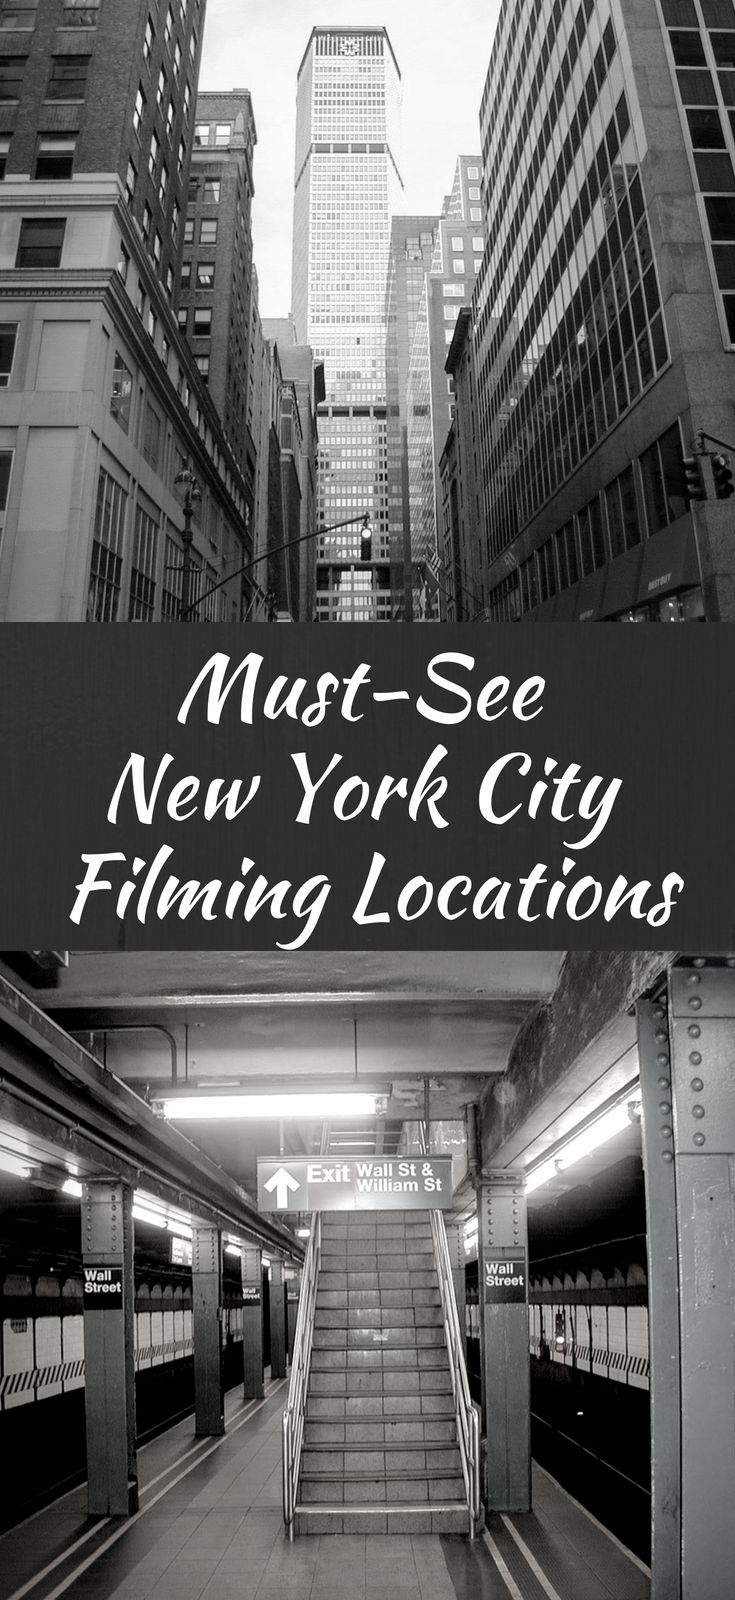 10 NYC Shooting Locations To Visit: Top TV Shows Filmed In New York City